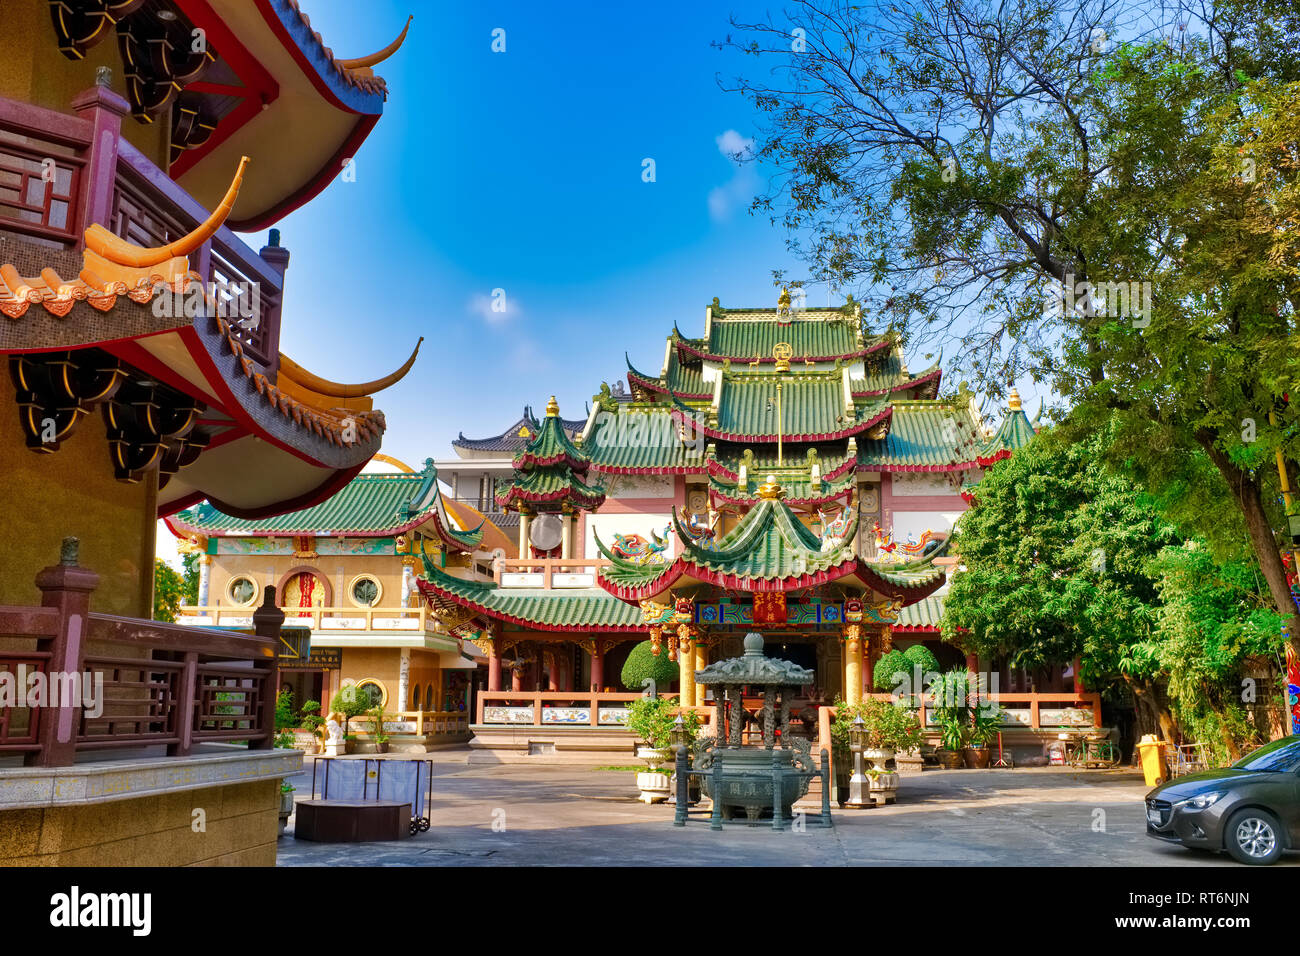 The main bldg. on Chee Chin Khor Temple compound built by the Moral Uplifting Society, with partial view of a pagoda (l); Bangkok, Thailand - Stock Image